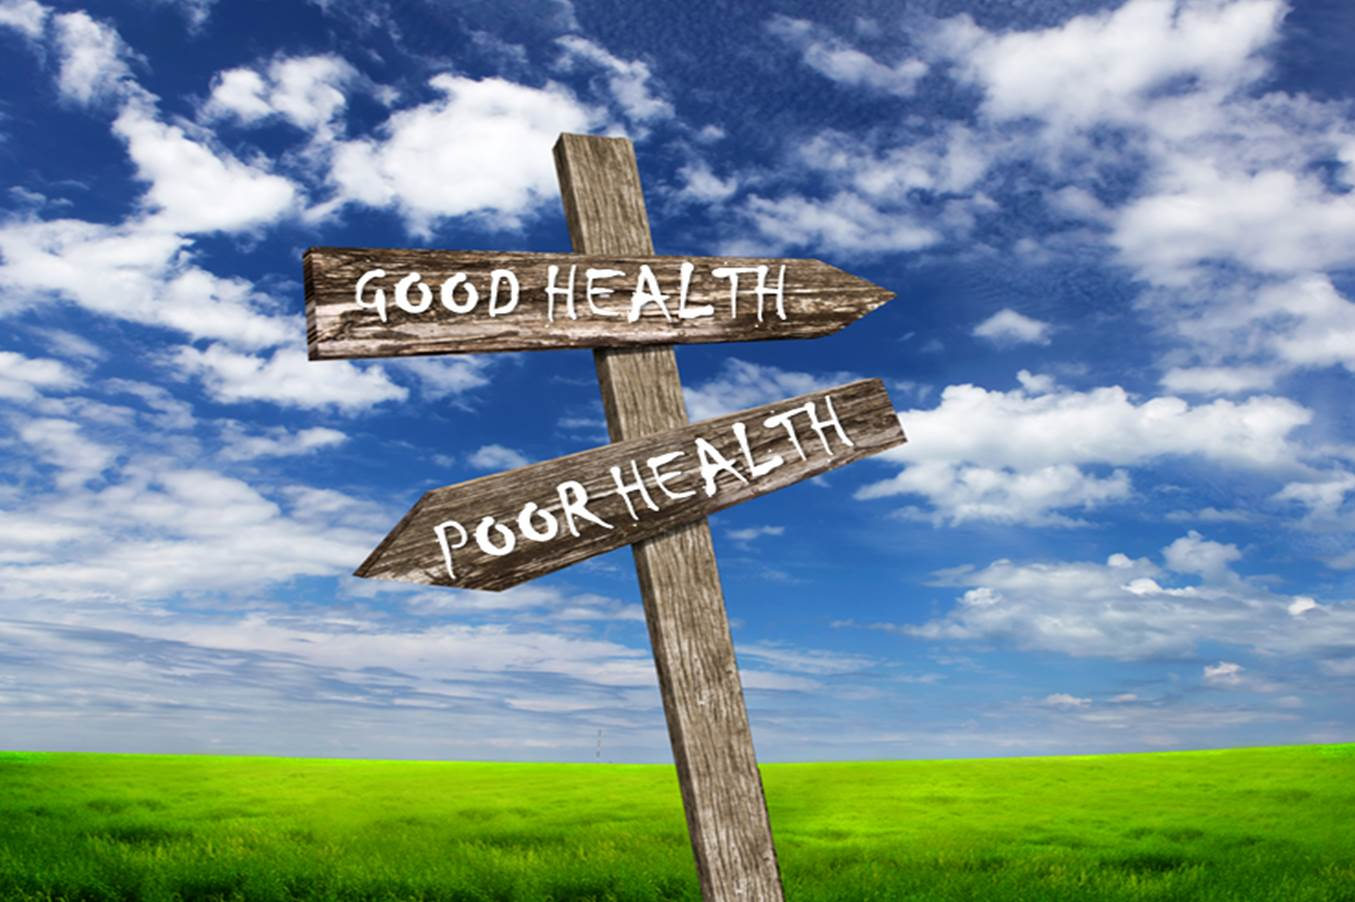 Good-health-poor-health